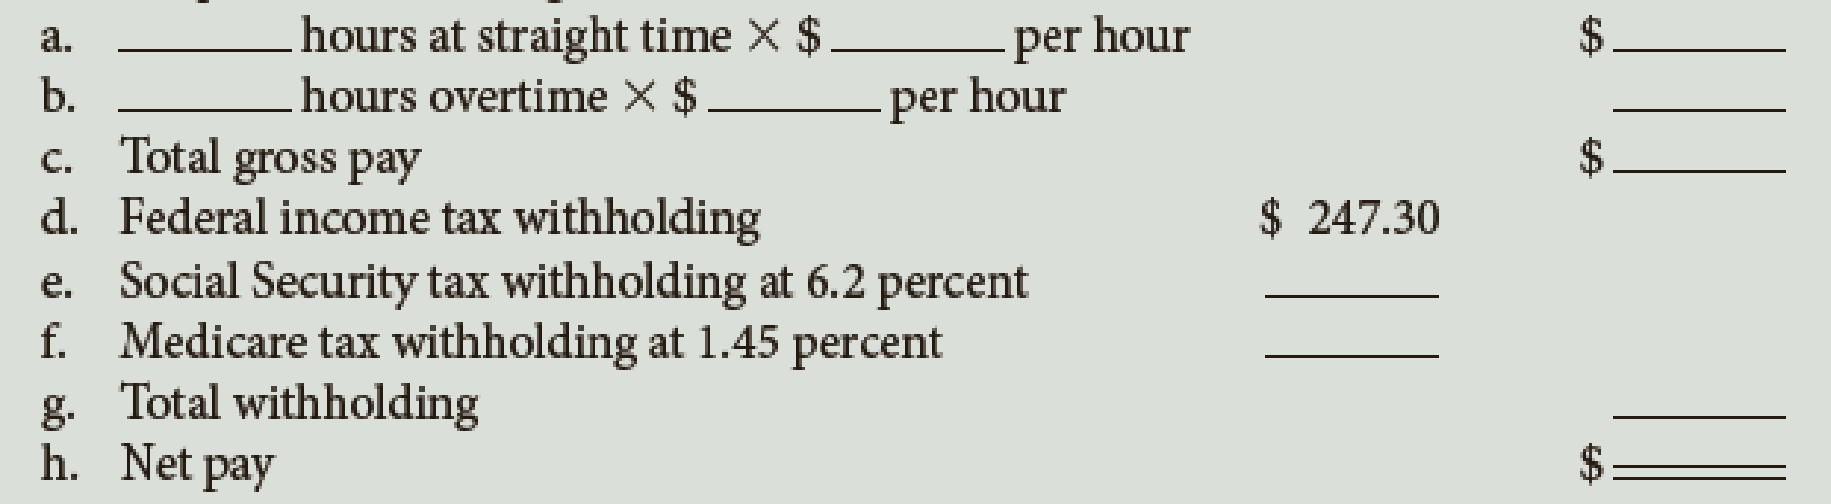 Chapter 7, Problem 2E, Lisa Meilo works for Pacific Company, which pays its employees time-and-a-half for all hours worked